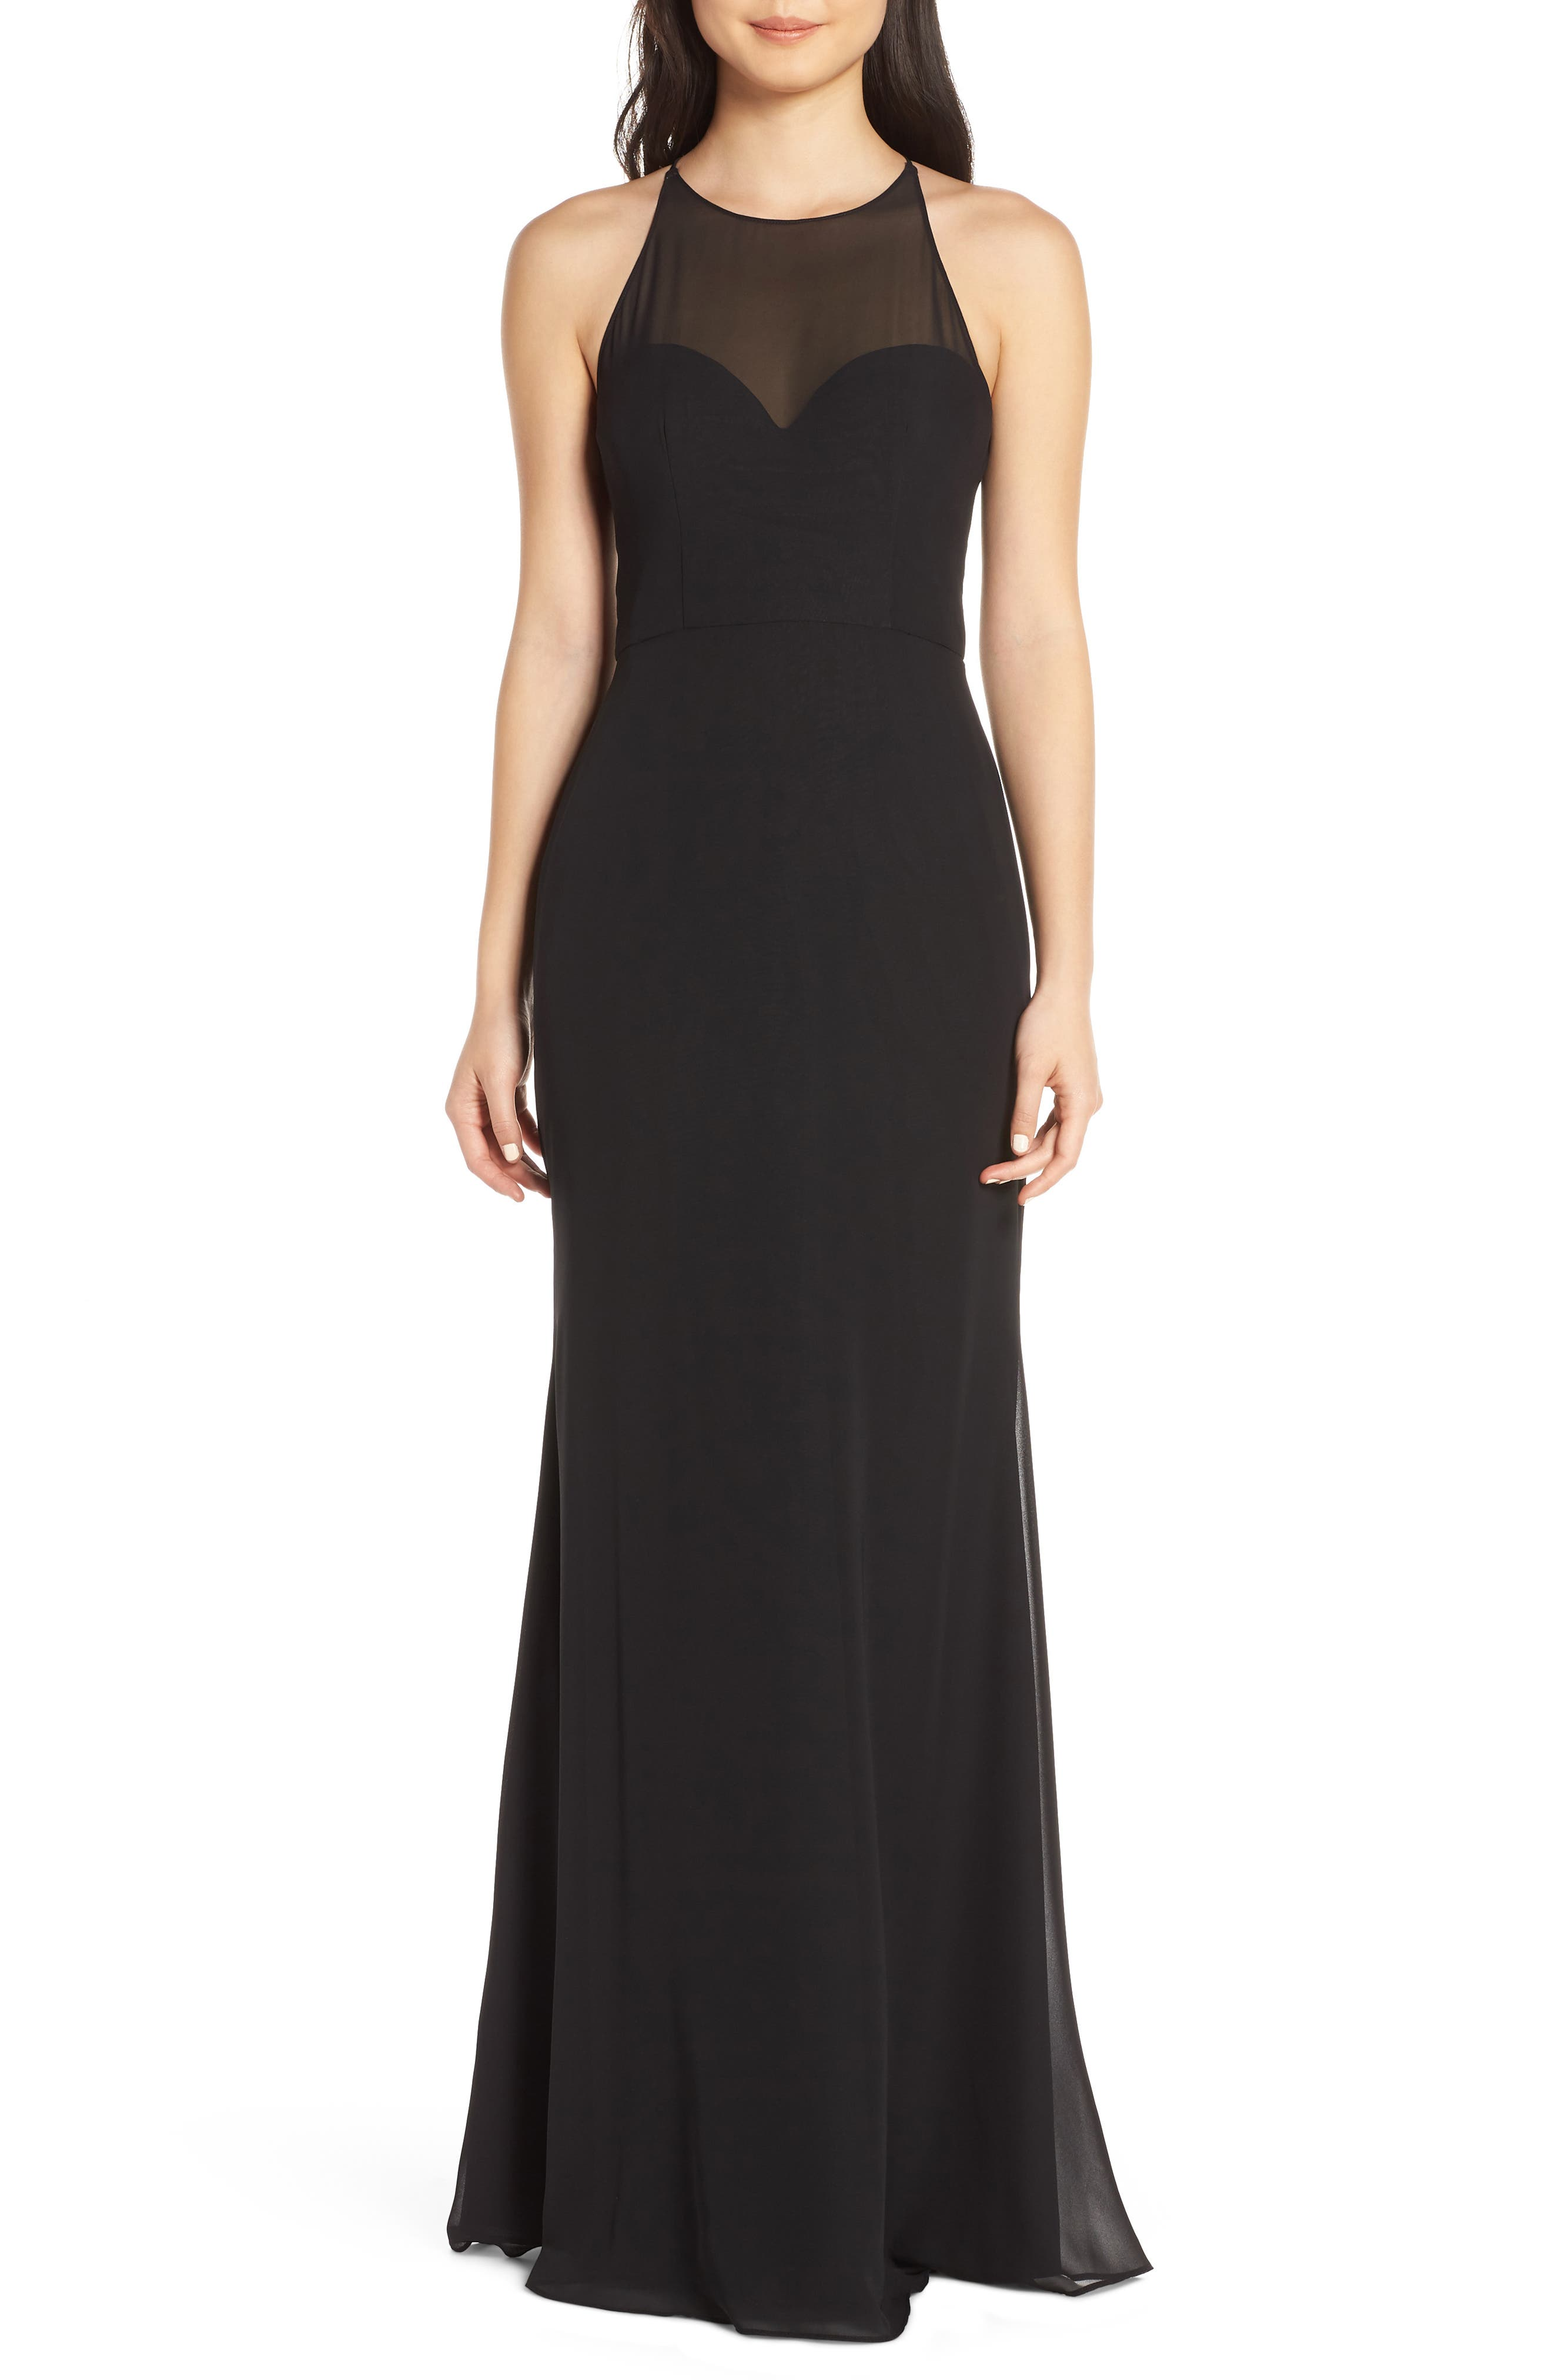 Hayley Paige Occasions Sheer Racerback Chiffon Evening Dress, Black